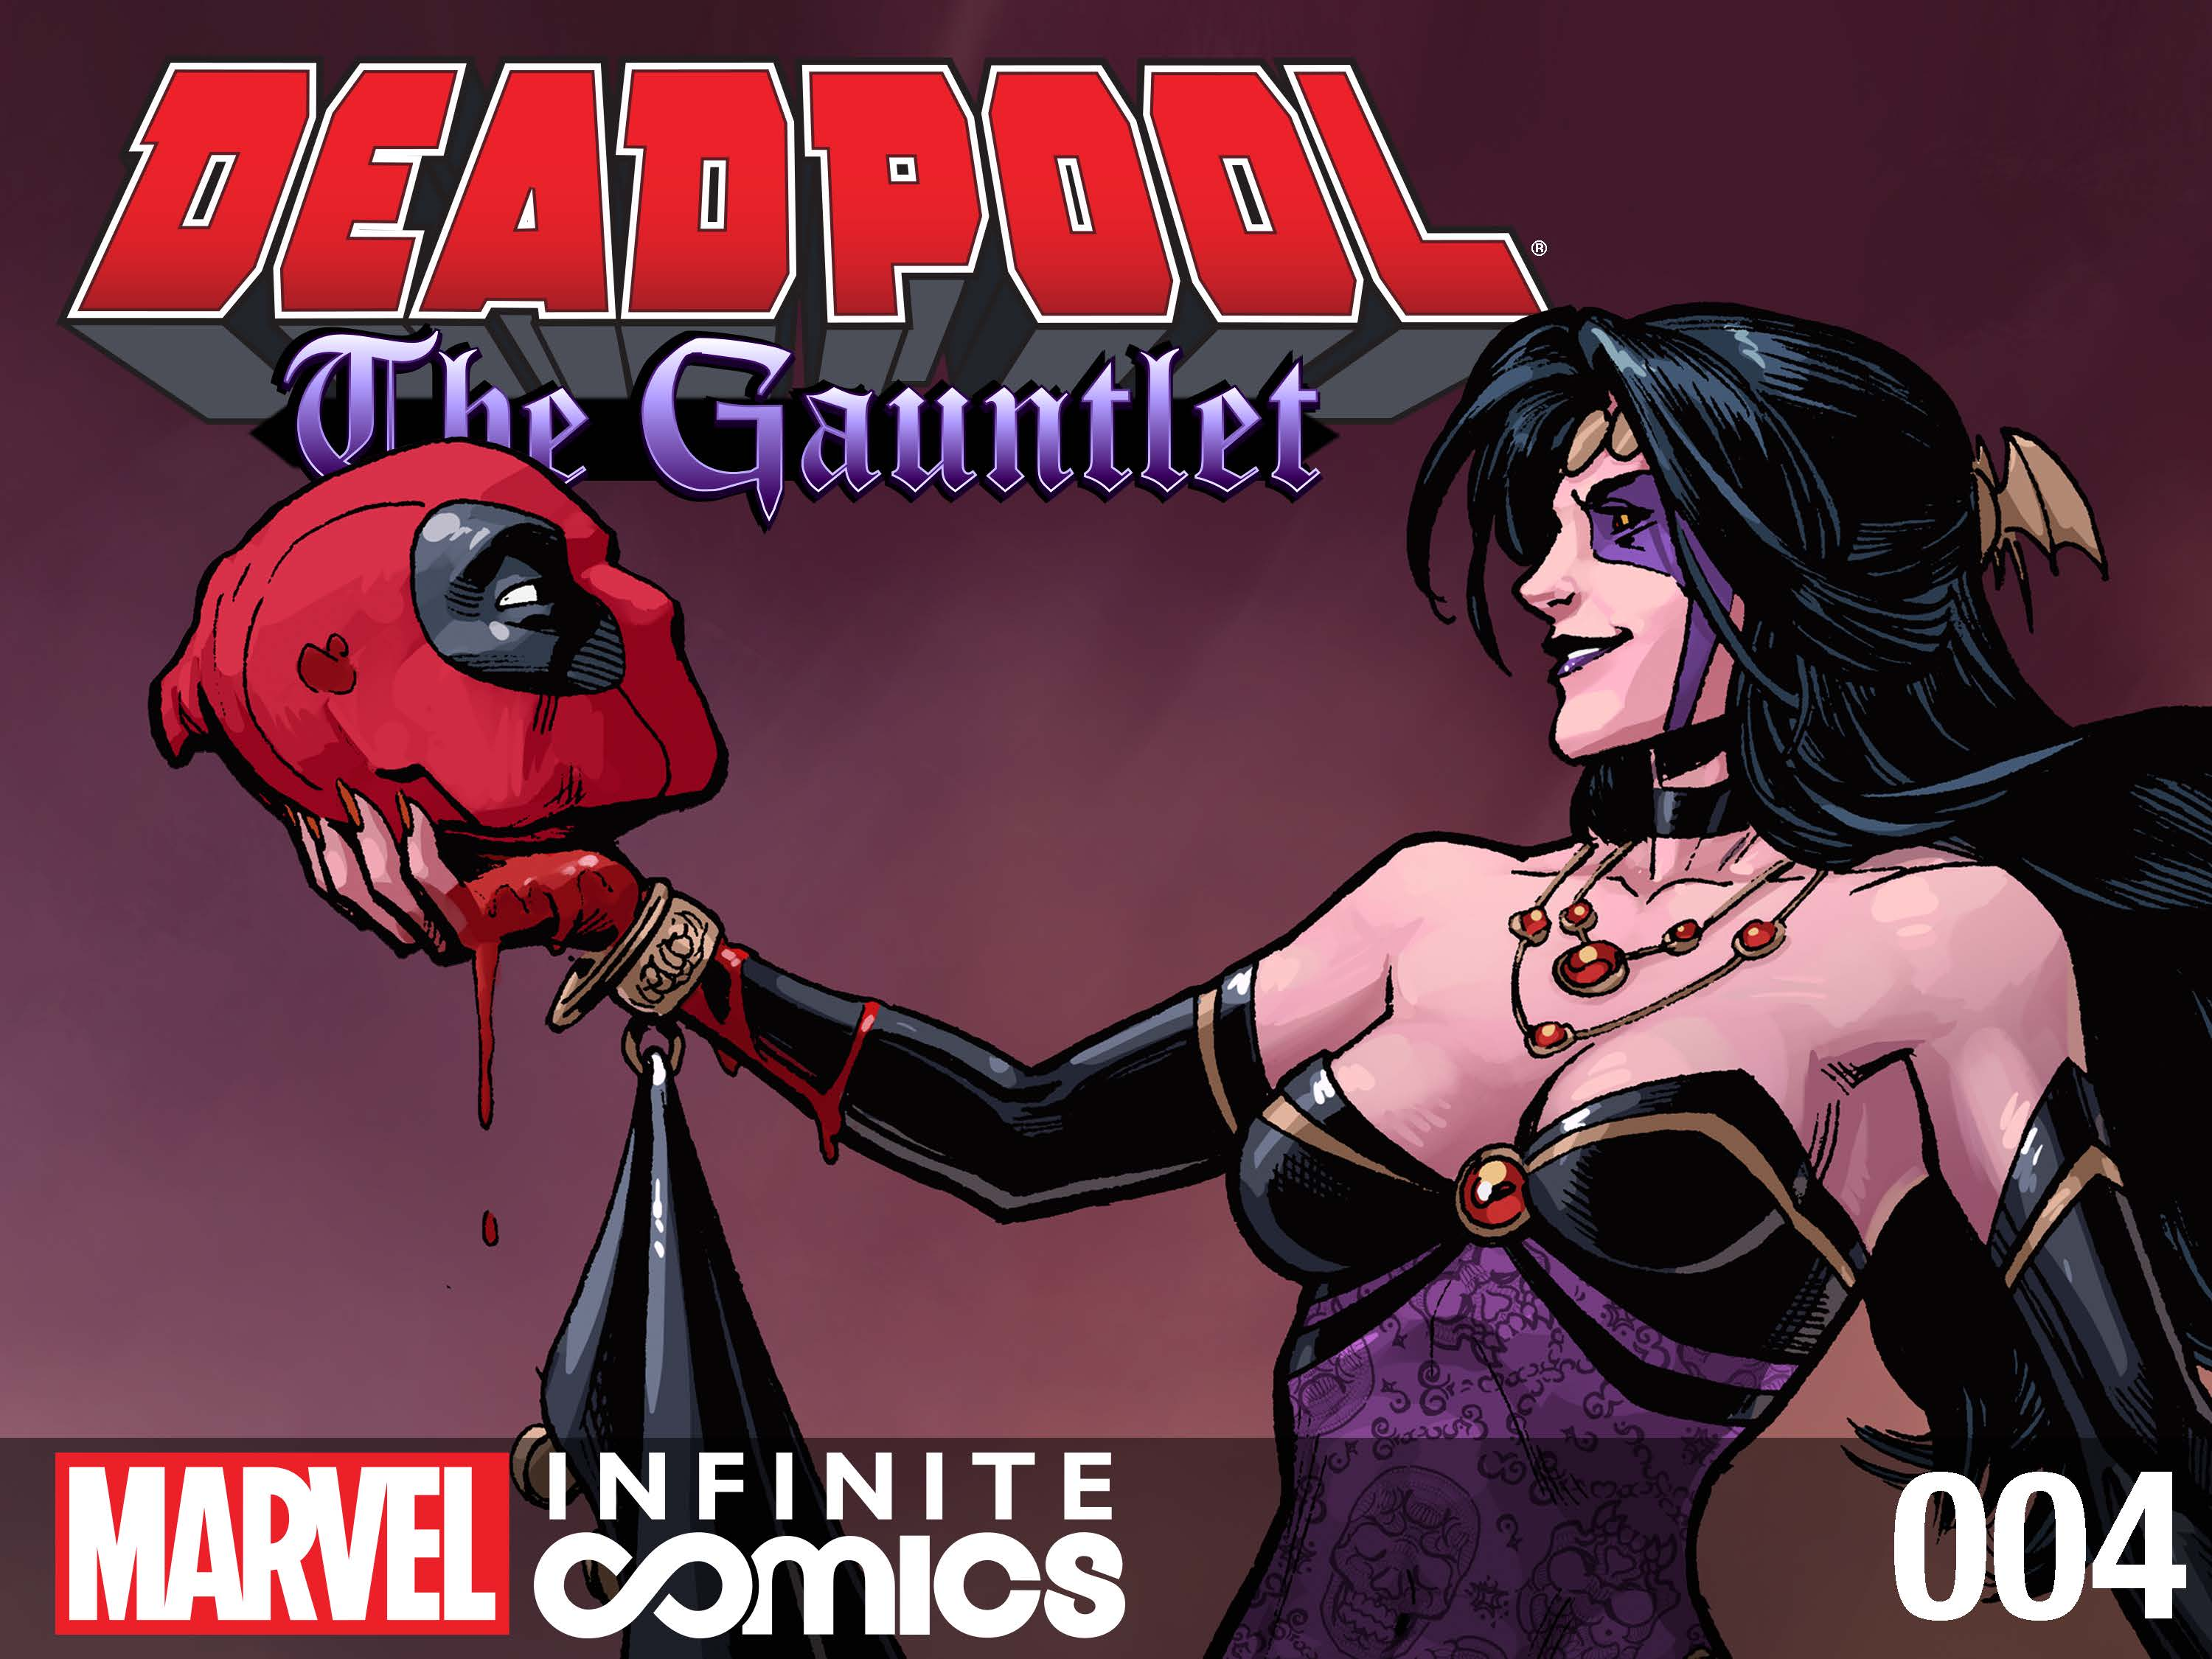 Here comes the bride! DEADPOOL: THE GAUNTLET #4 released today on INFINITE COMICS